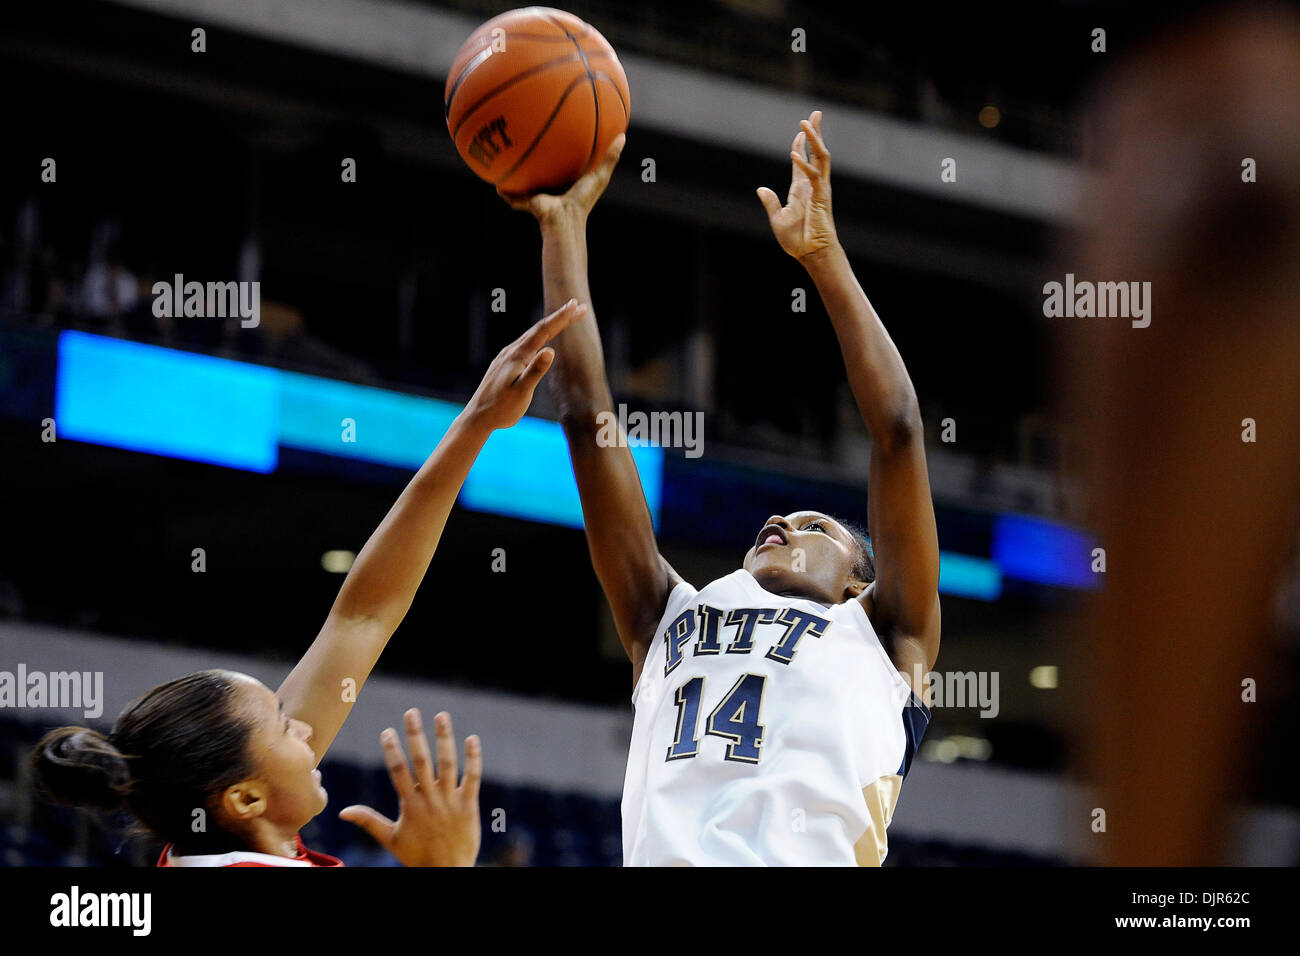 Mar. 01, 2010 - Pittsburgh, PA, U.S - 01 March 2010: University of Pittsburgh junior guard Jania Sims (14) goes Stock Photo